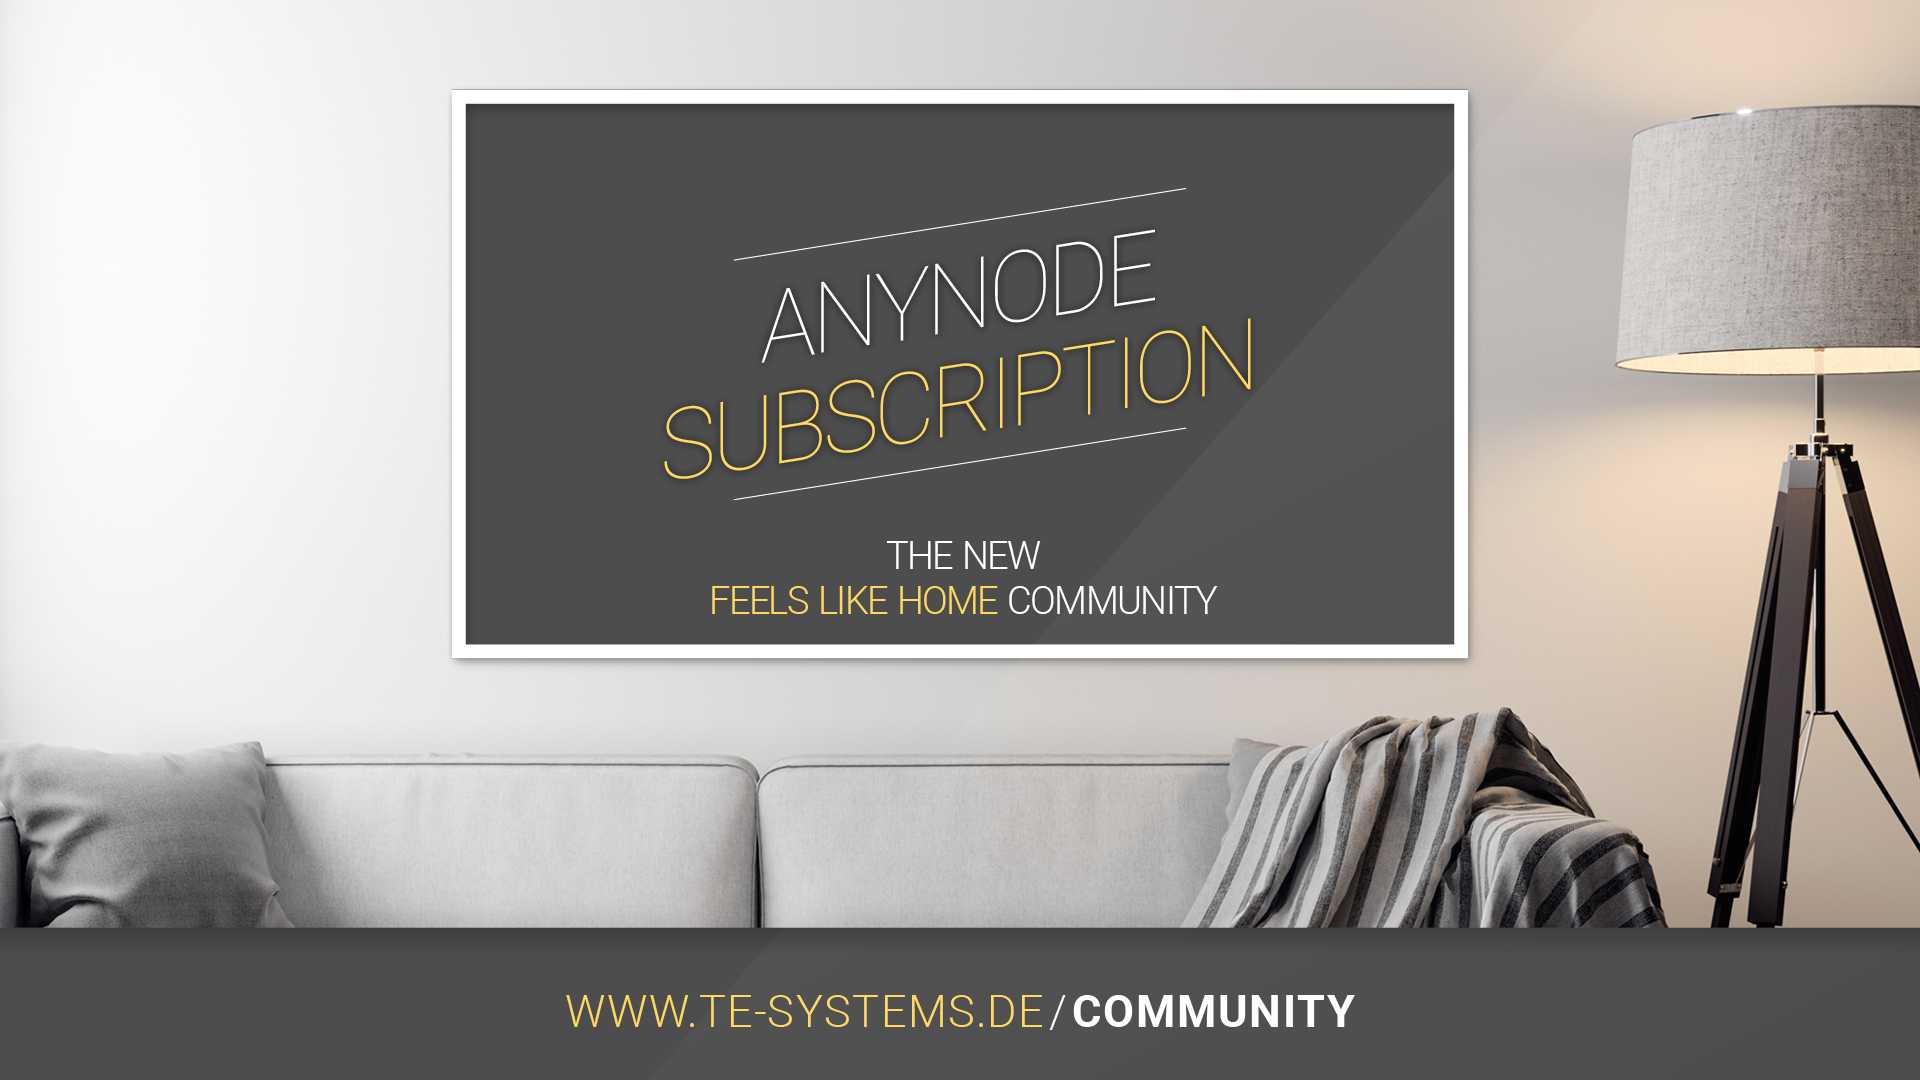 """be excited: anynode subscriptions via our new """"feels like home community"""" #staytuned"""